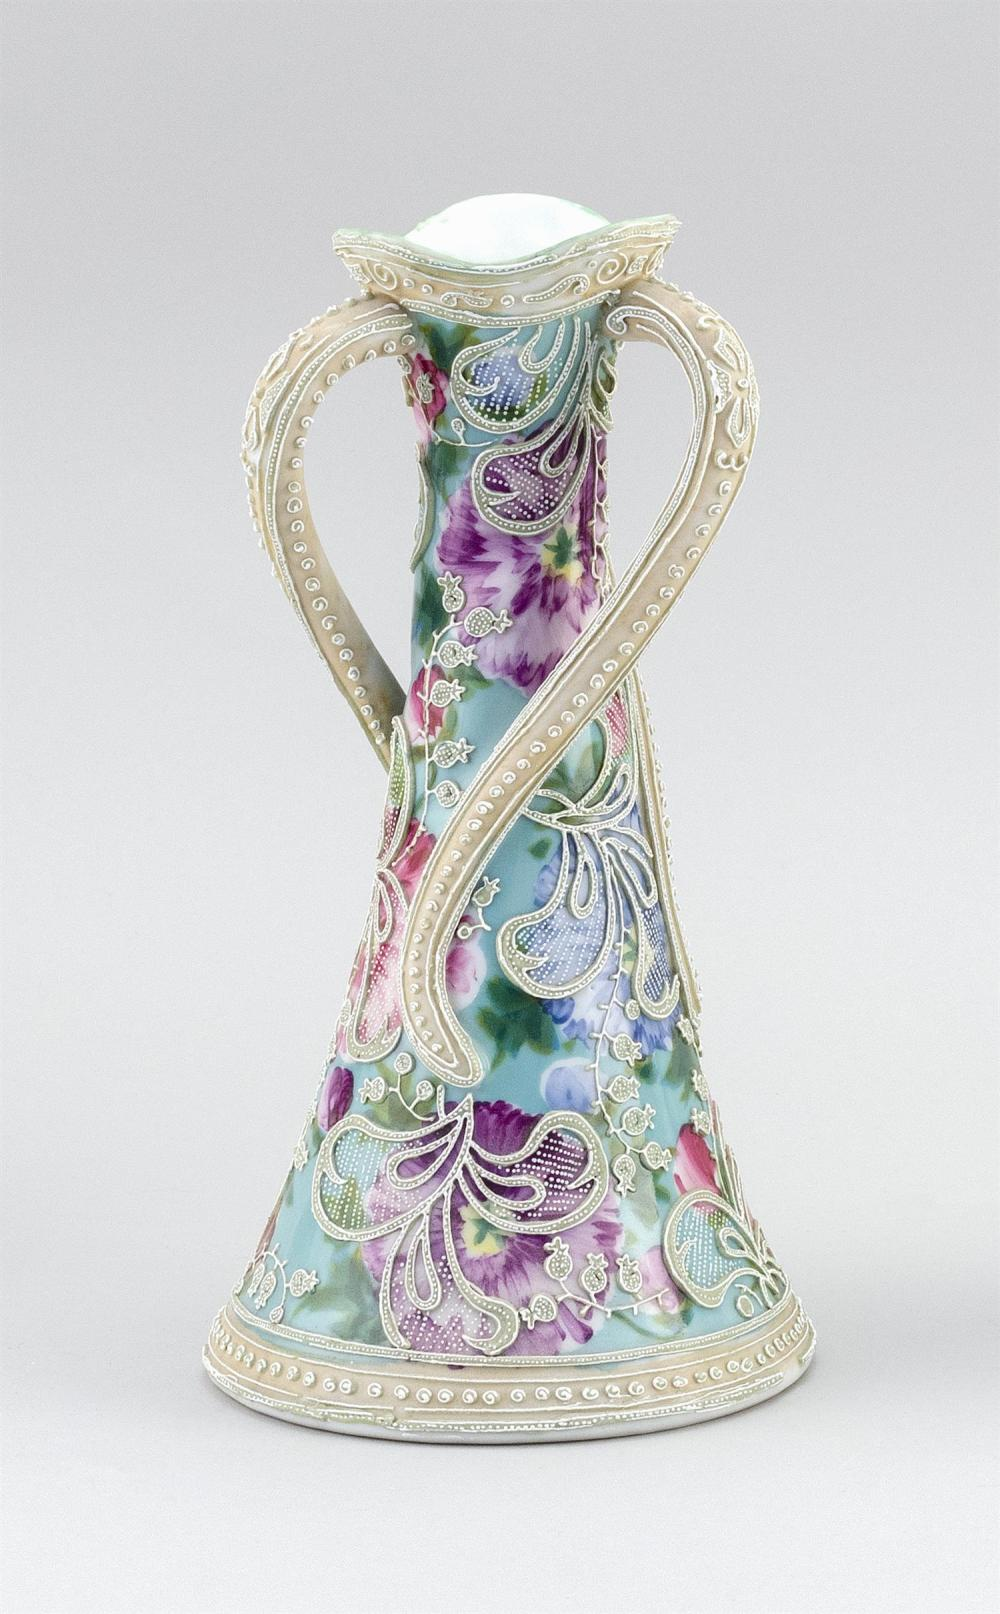 "MORIAGE NIPPON PORCELAIN VASE Conical, with three twisting handles. Moriage bellflower design on a floral-patterned ground. Height 10""."